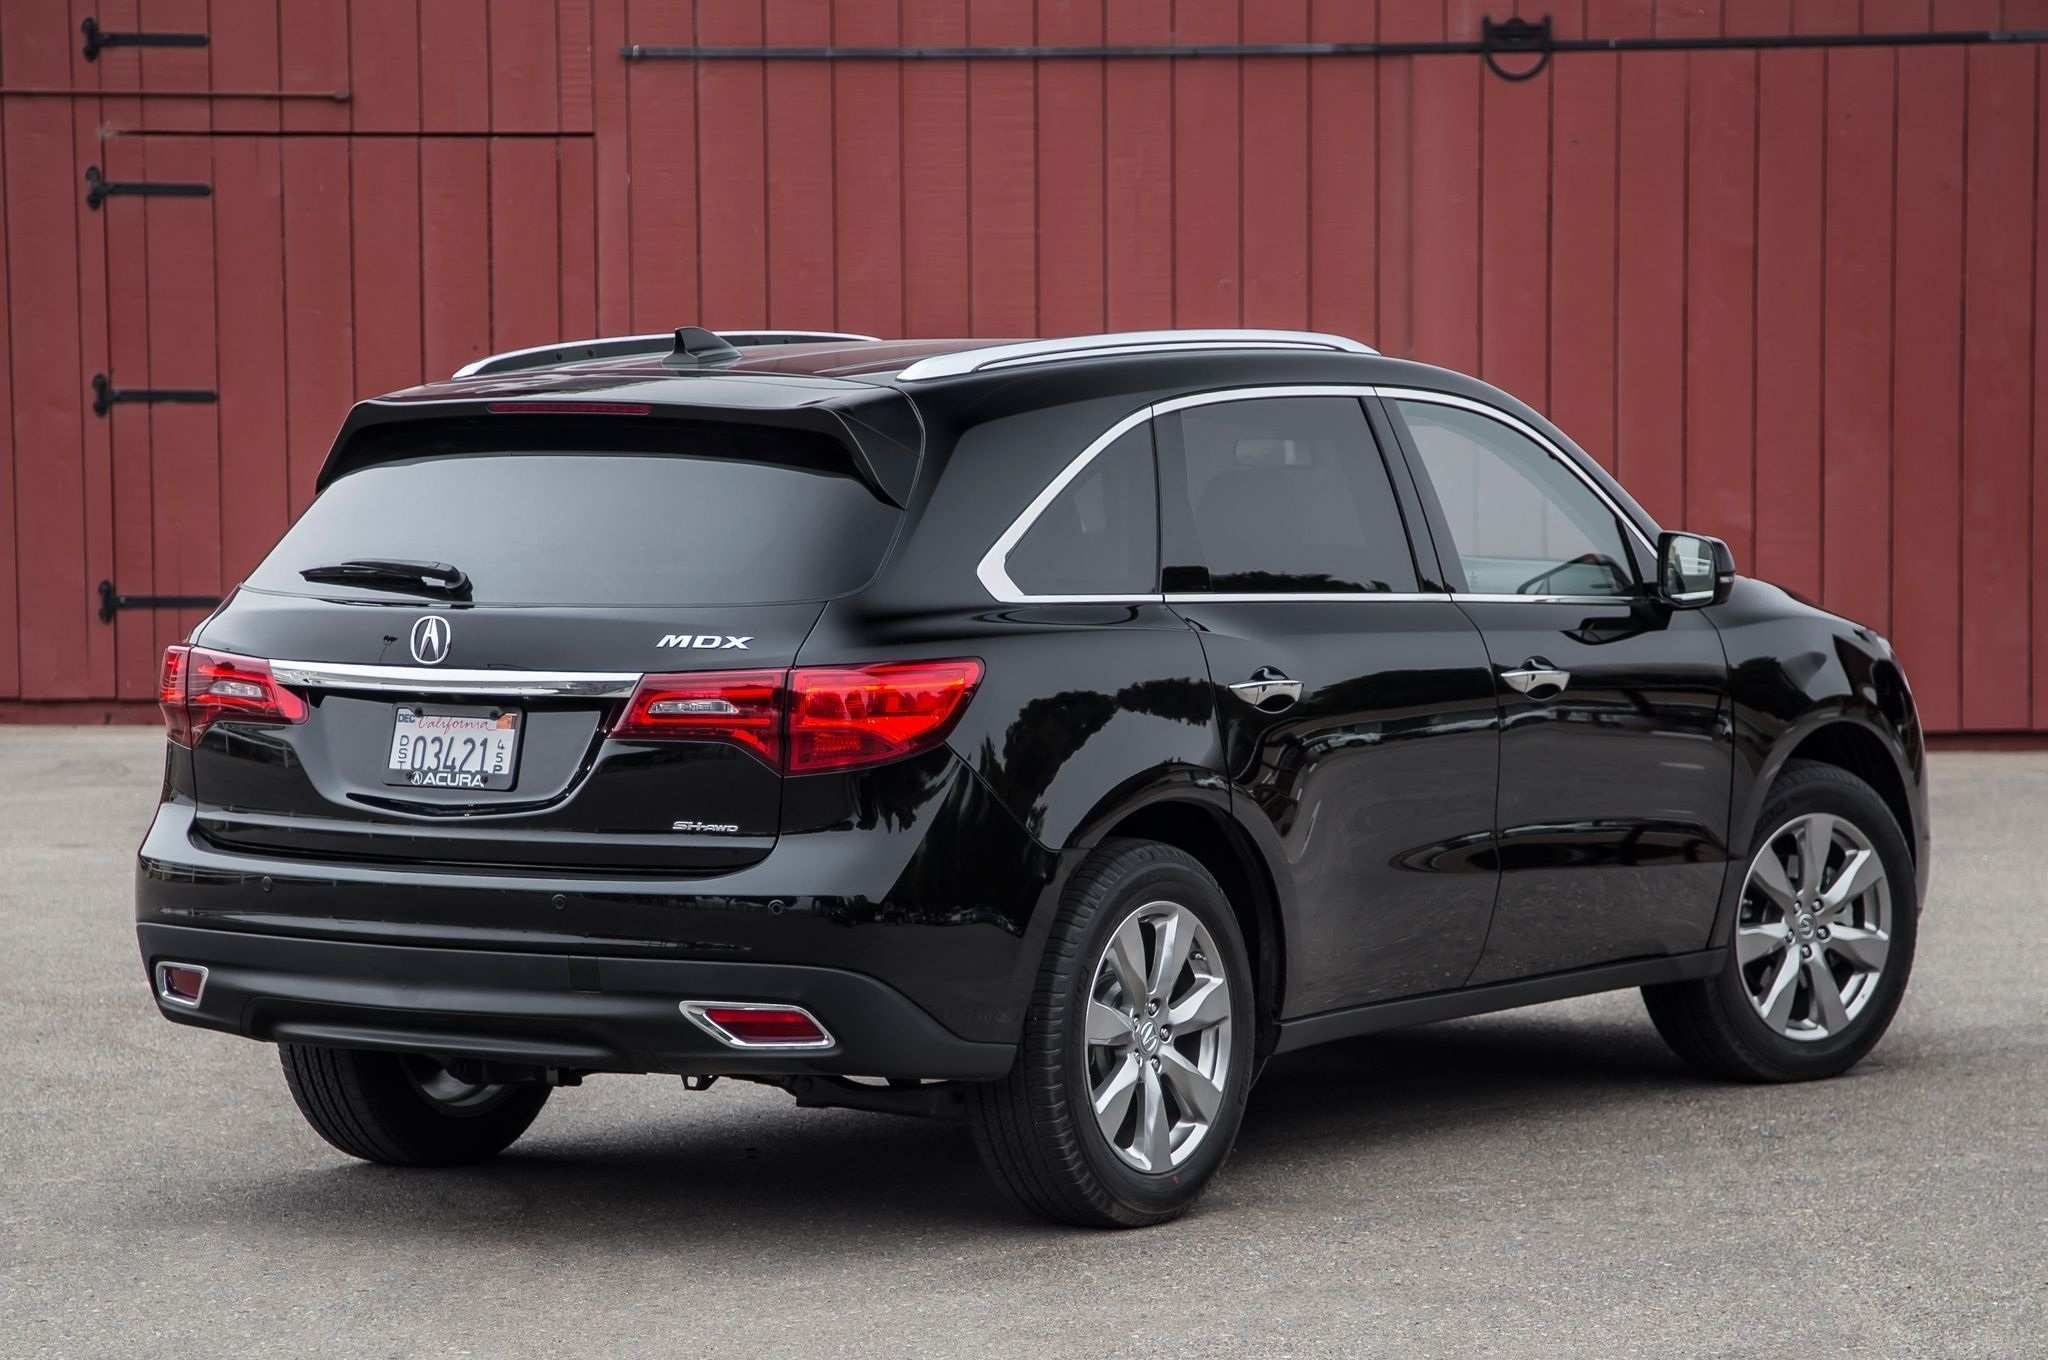 64 The The Acura Rdx 2019 Release Date Usa Spy Shoot Redesign by The Acura Rdx 2019 Release Date Usa Spy Shoot